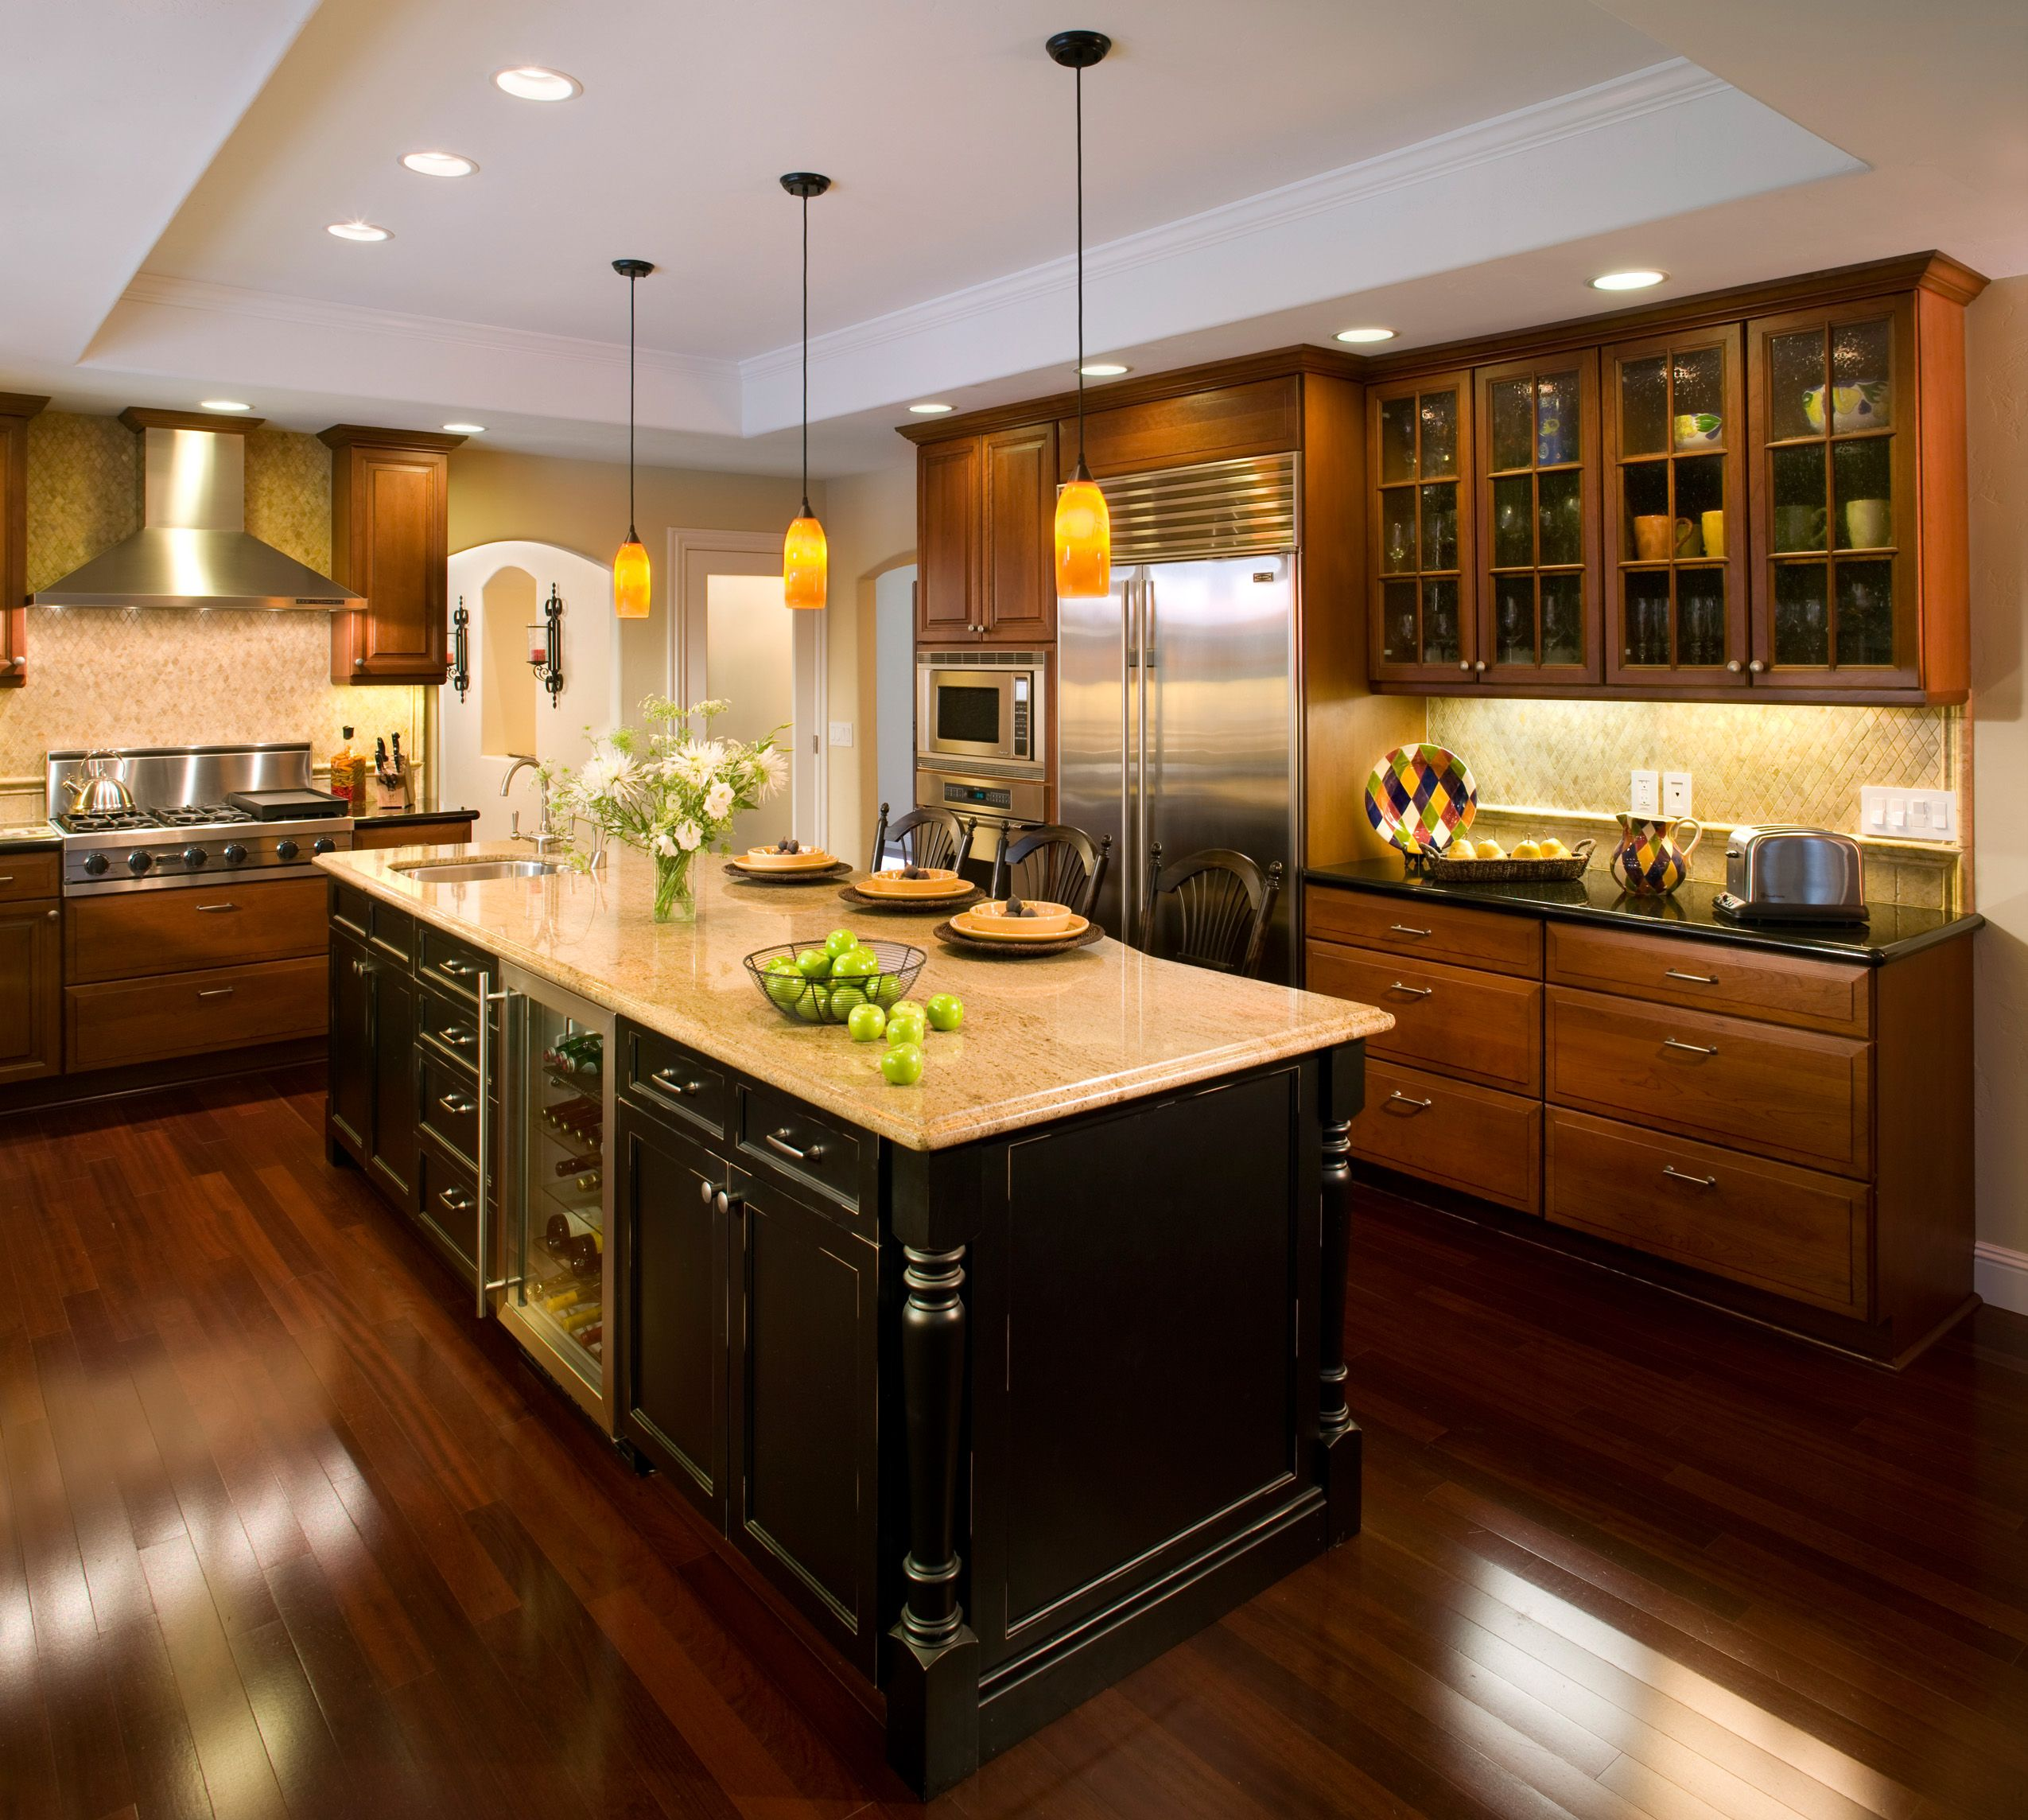 Remodeling 101 8 Sources For High End Used Appliances Kitchen Remodel Small Modernist Furniture Beautiful Kitchen Designs